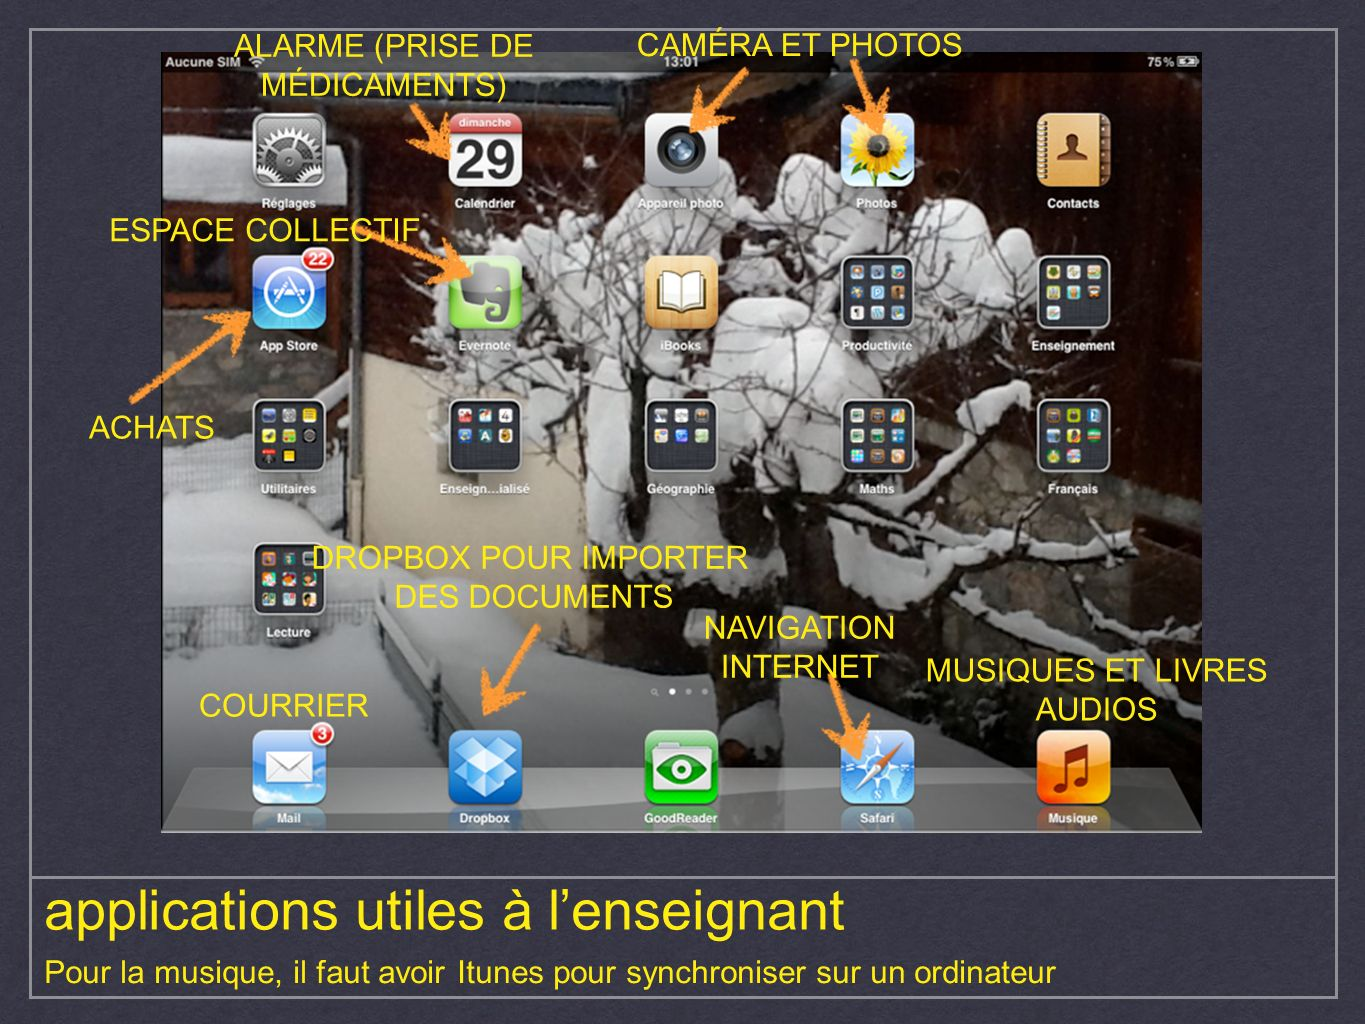 applications utiles à l'enseignant